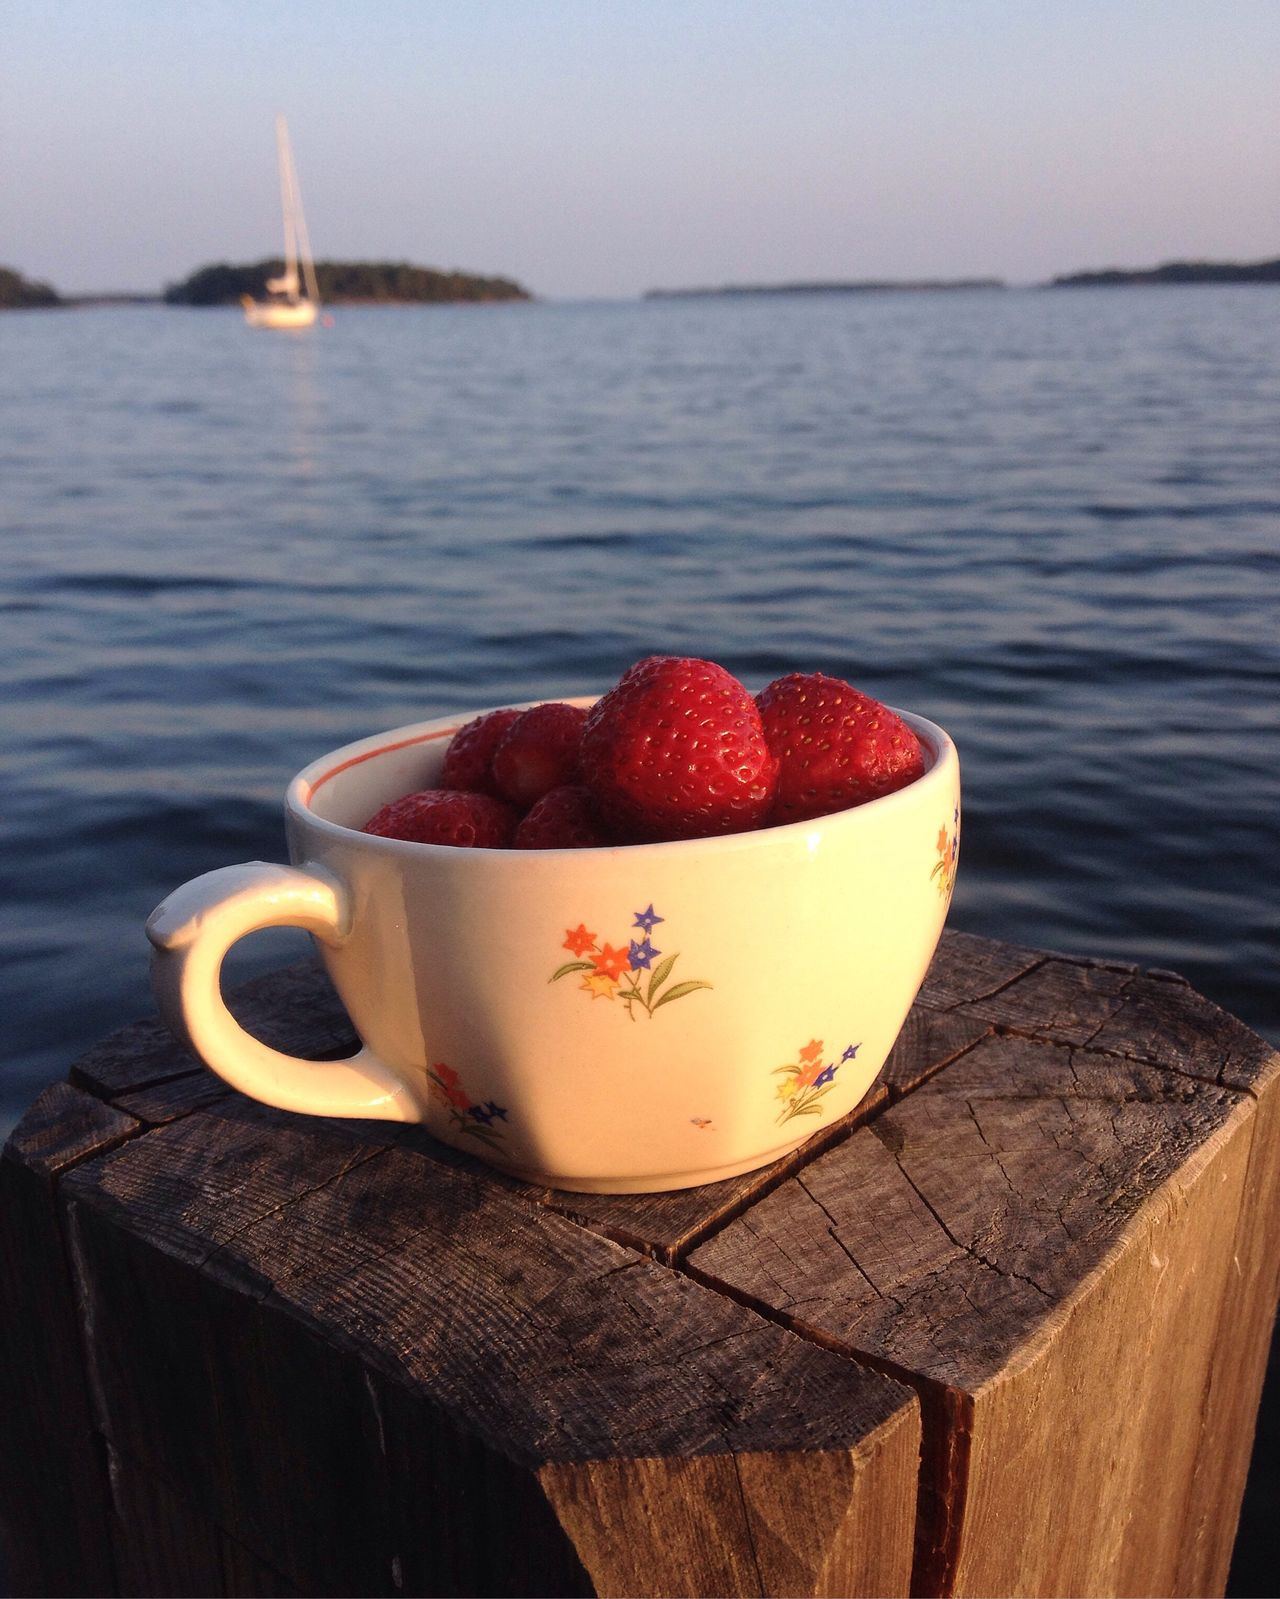 Strawberries Finnish Archipelago Finnish Summer Sea And Sky Sailing Boat Finland White Night Hot Summer Night